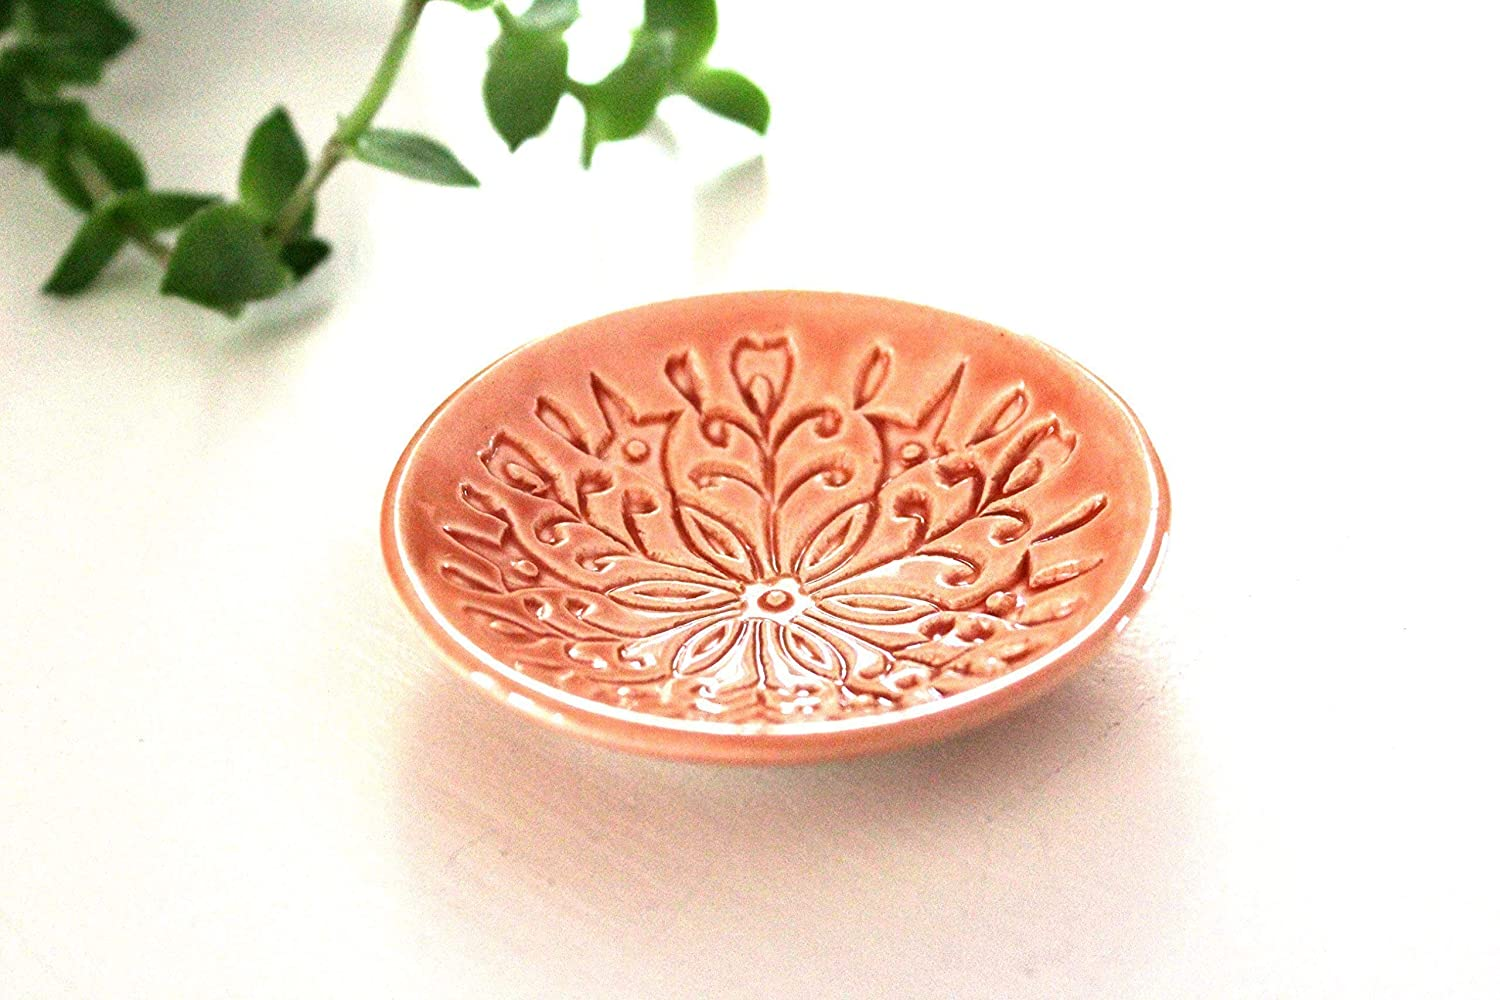 Peach Ring Holder - Handmade Jewelry Dish with Modern Scandinavian Floral Pattern